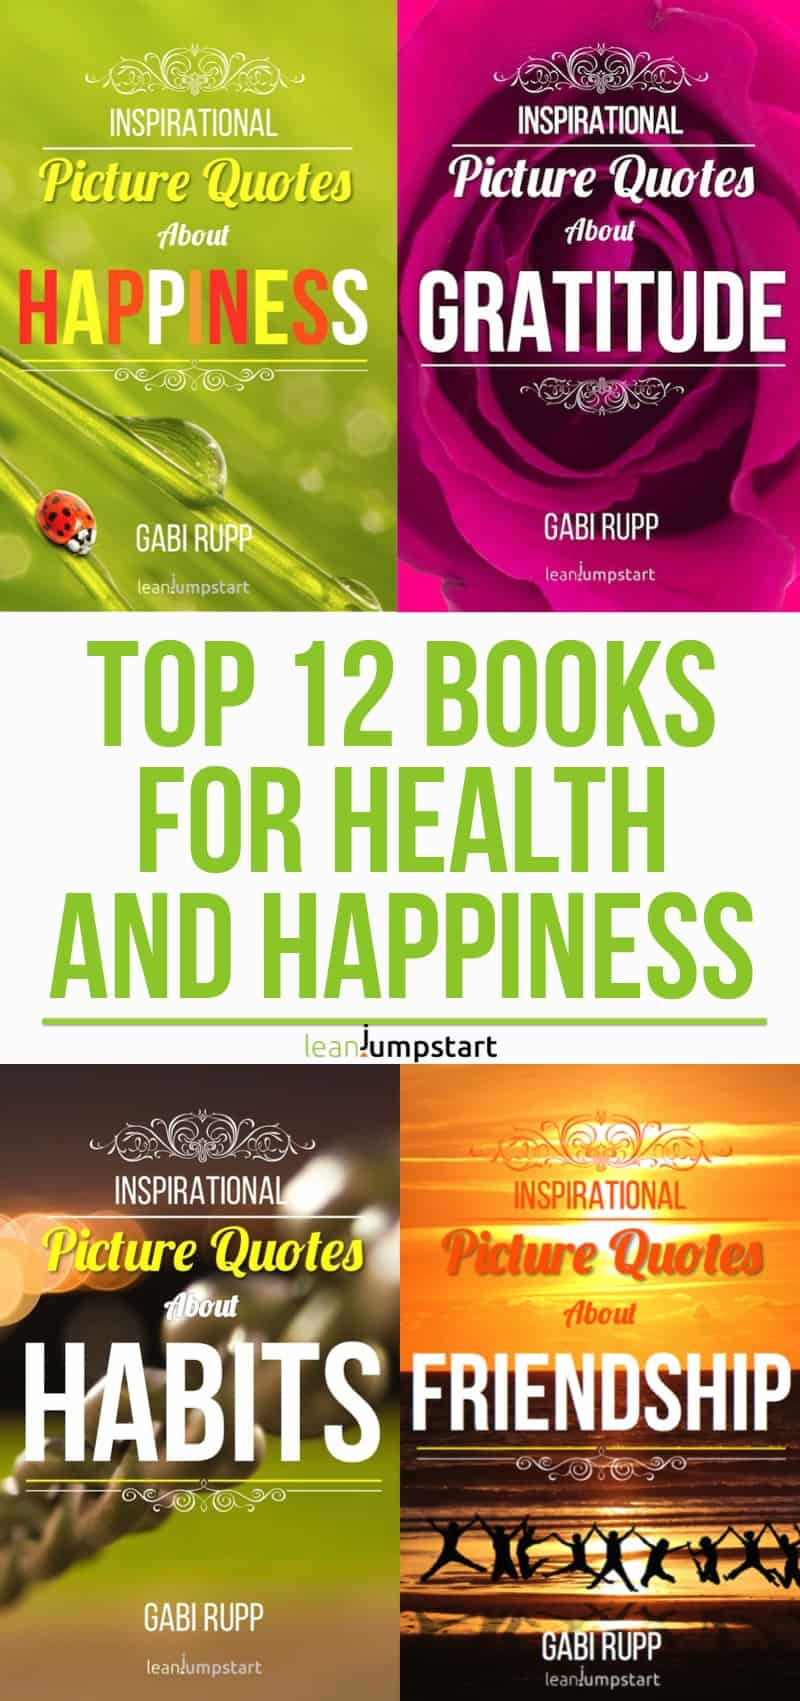 motivational books - top 12 inspirational books for health and happiness. Click through!